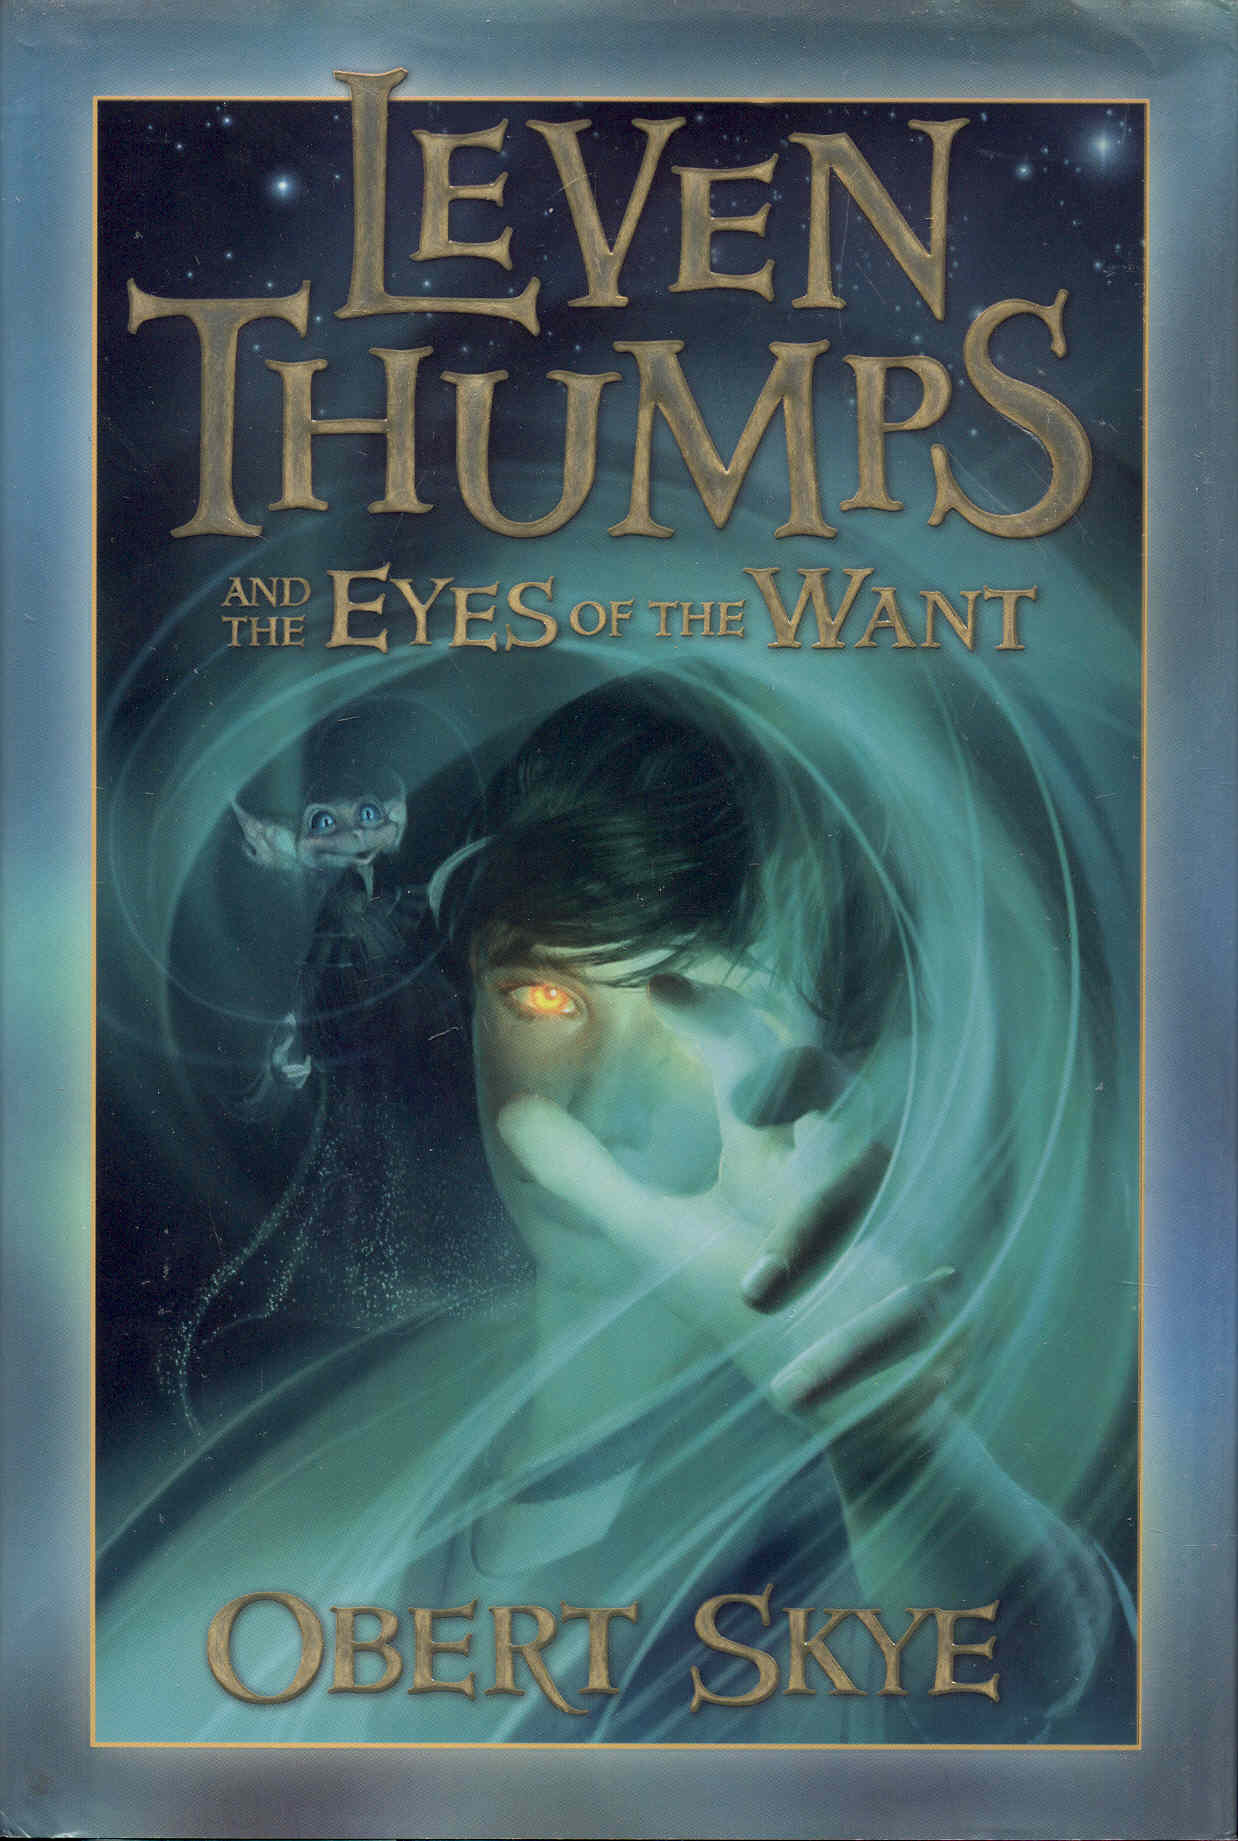 Image for Leven Thumps and the Eyes of the Want